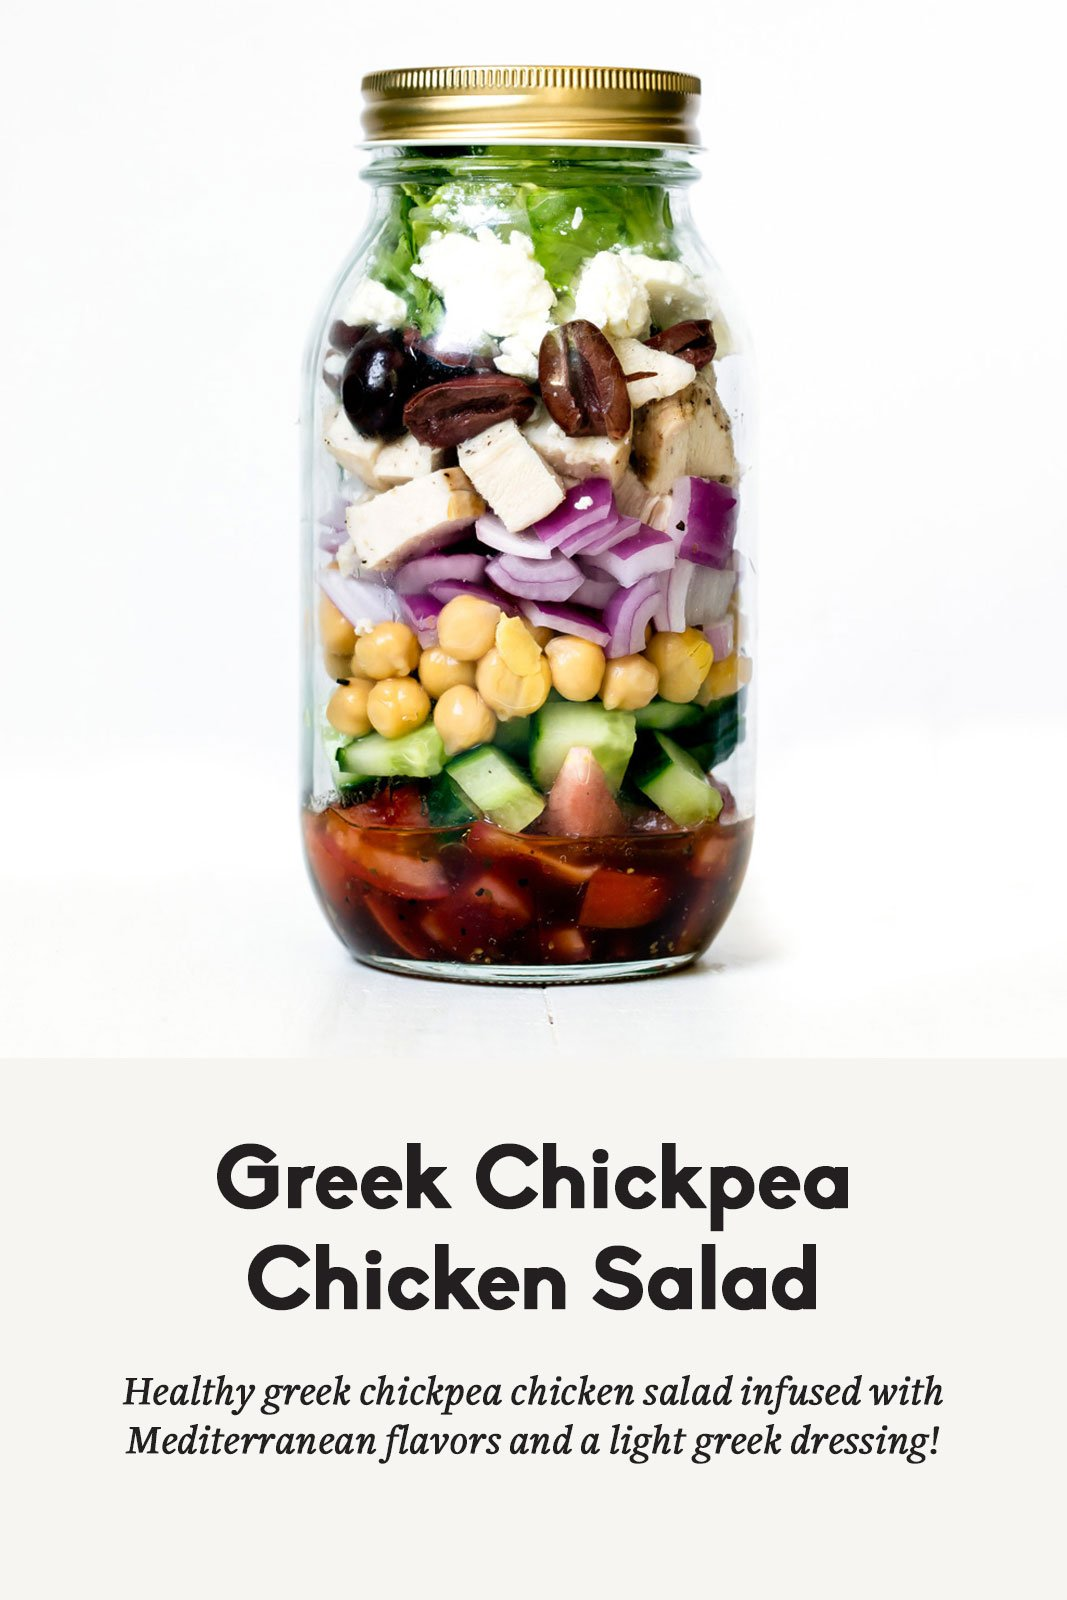 Greek chickpea chicken salad in a mason jar with a title underneath